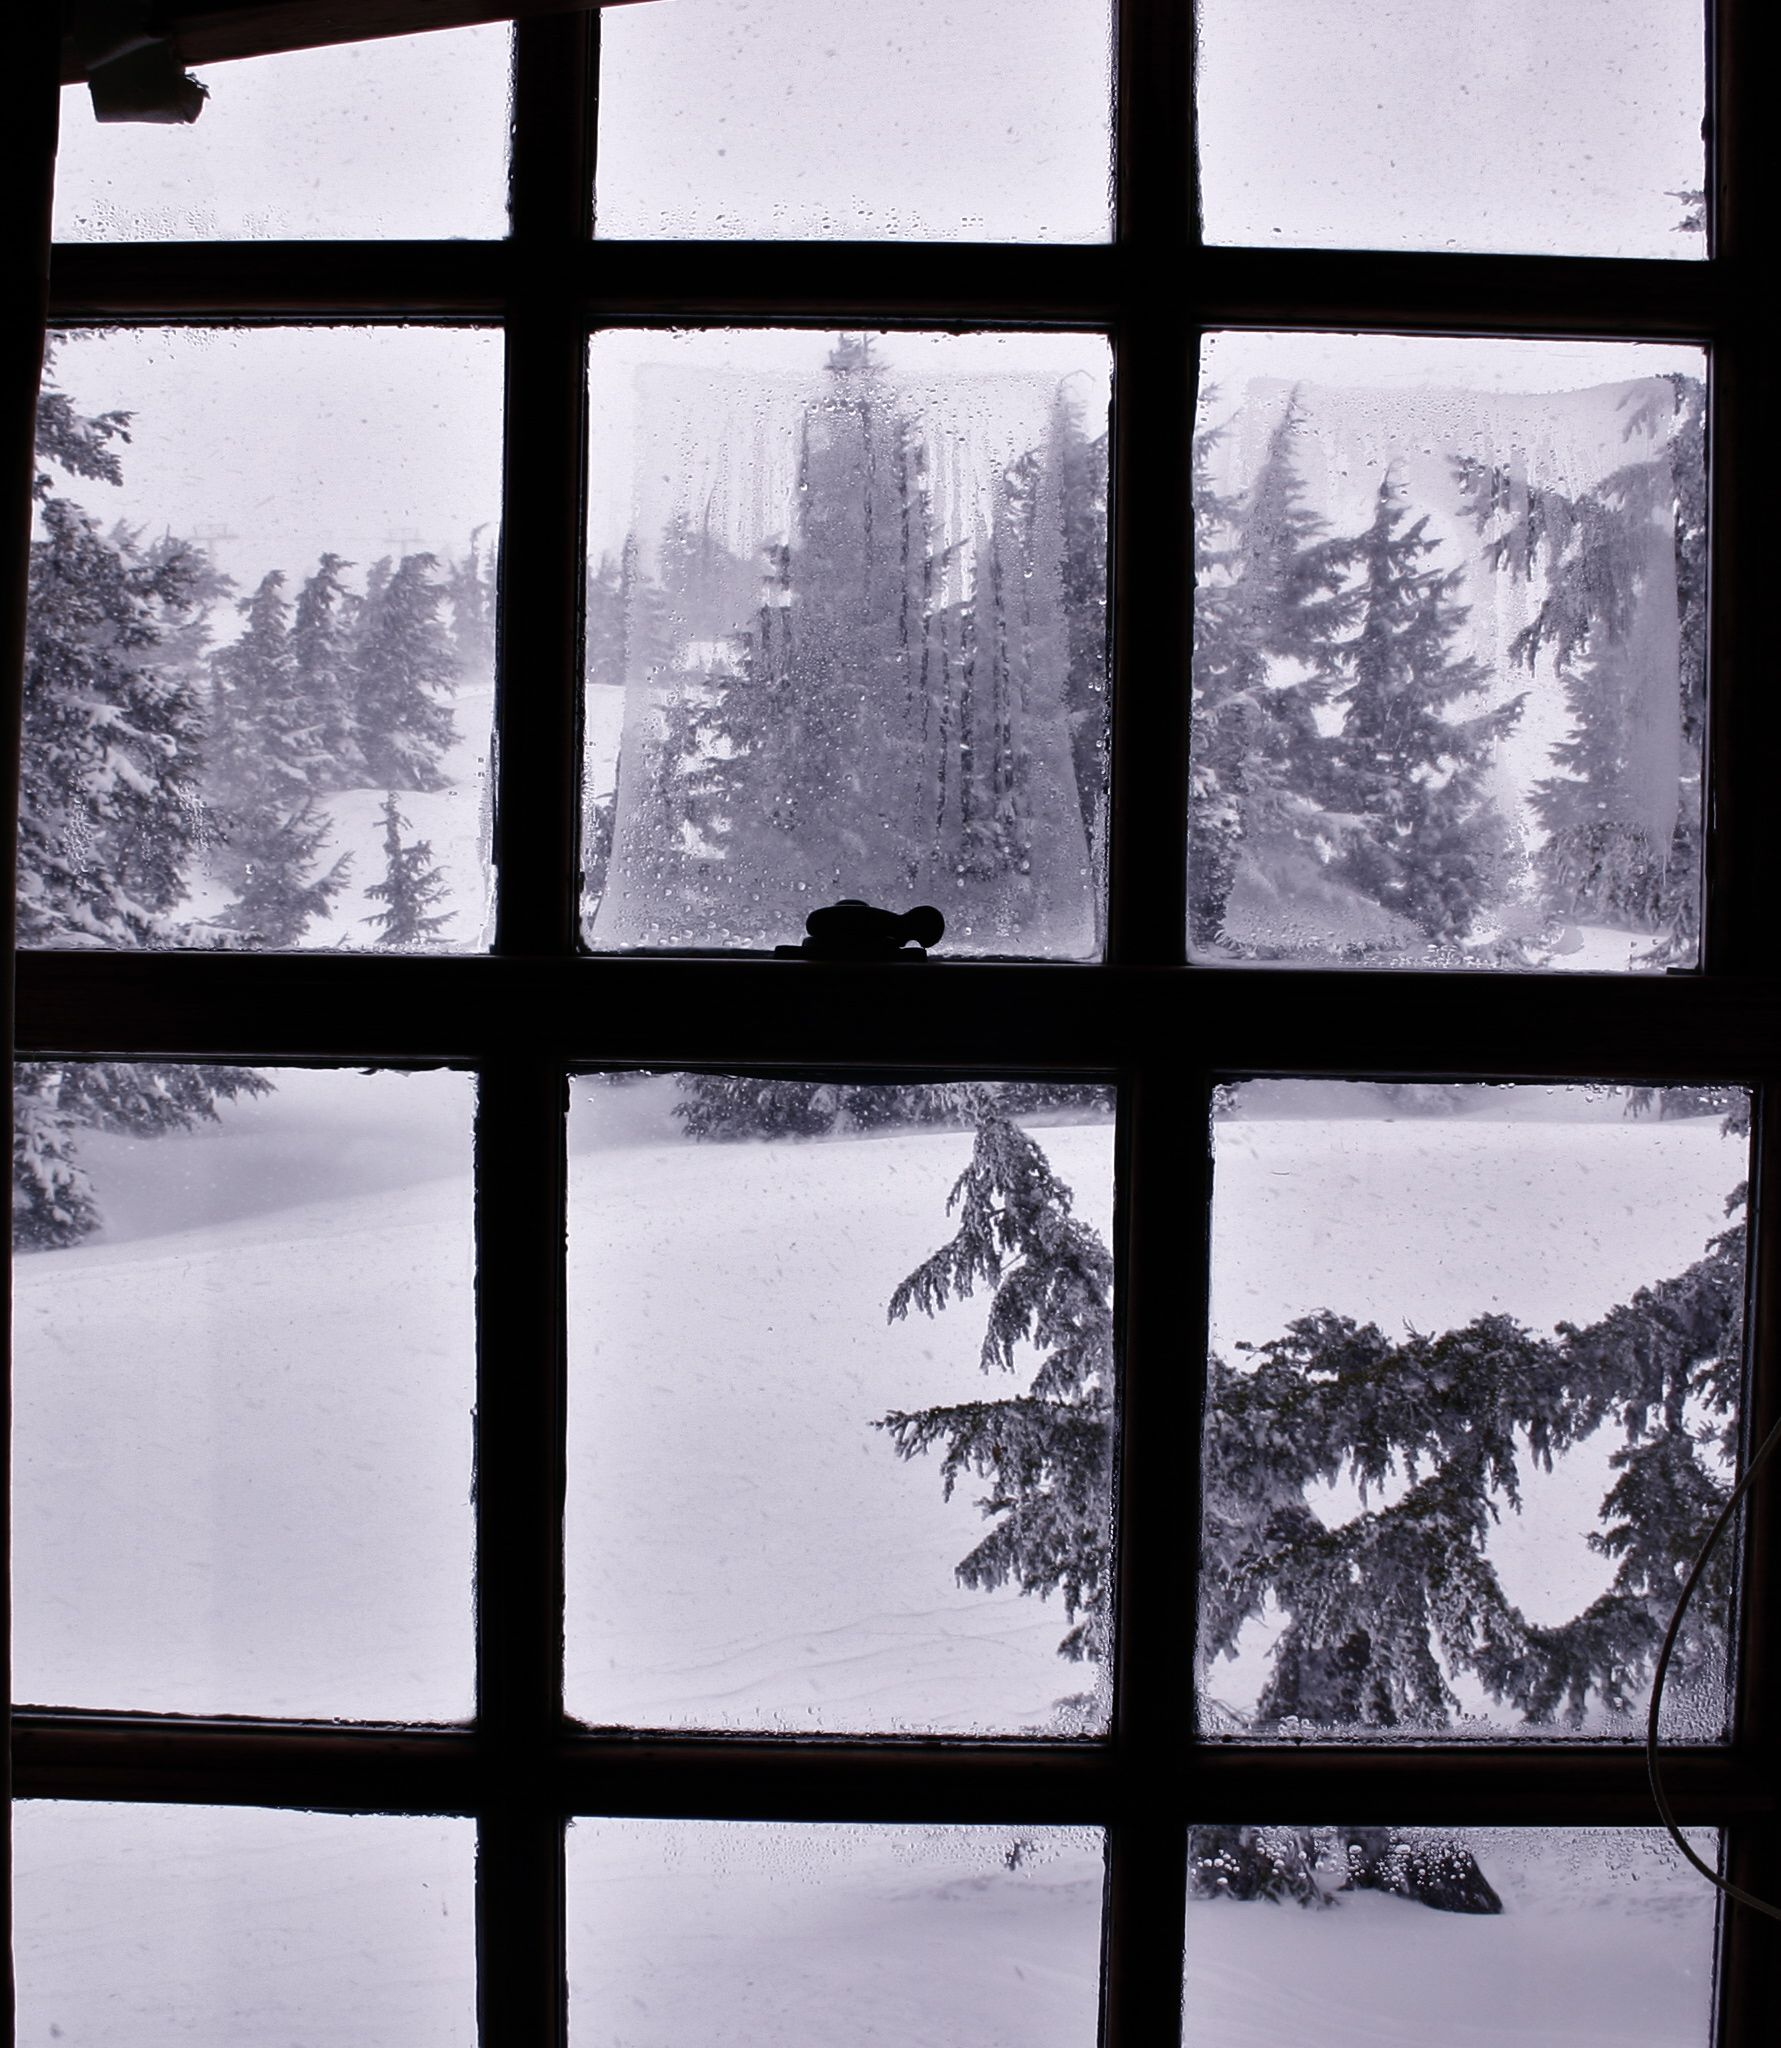 room with a view, timberline lodge